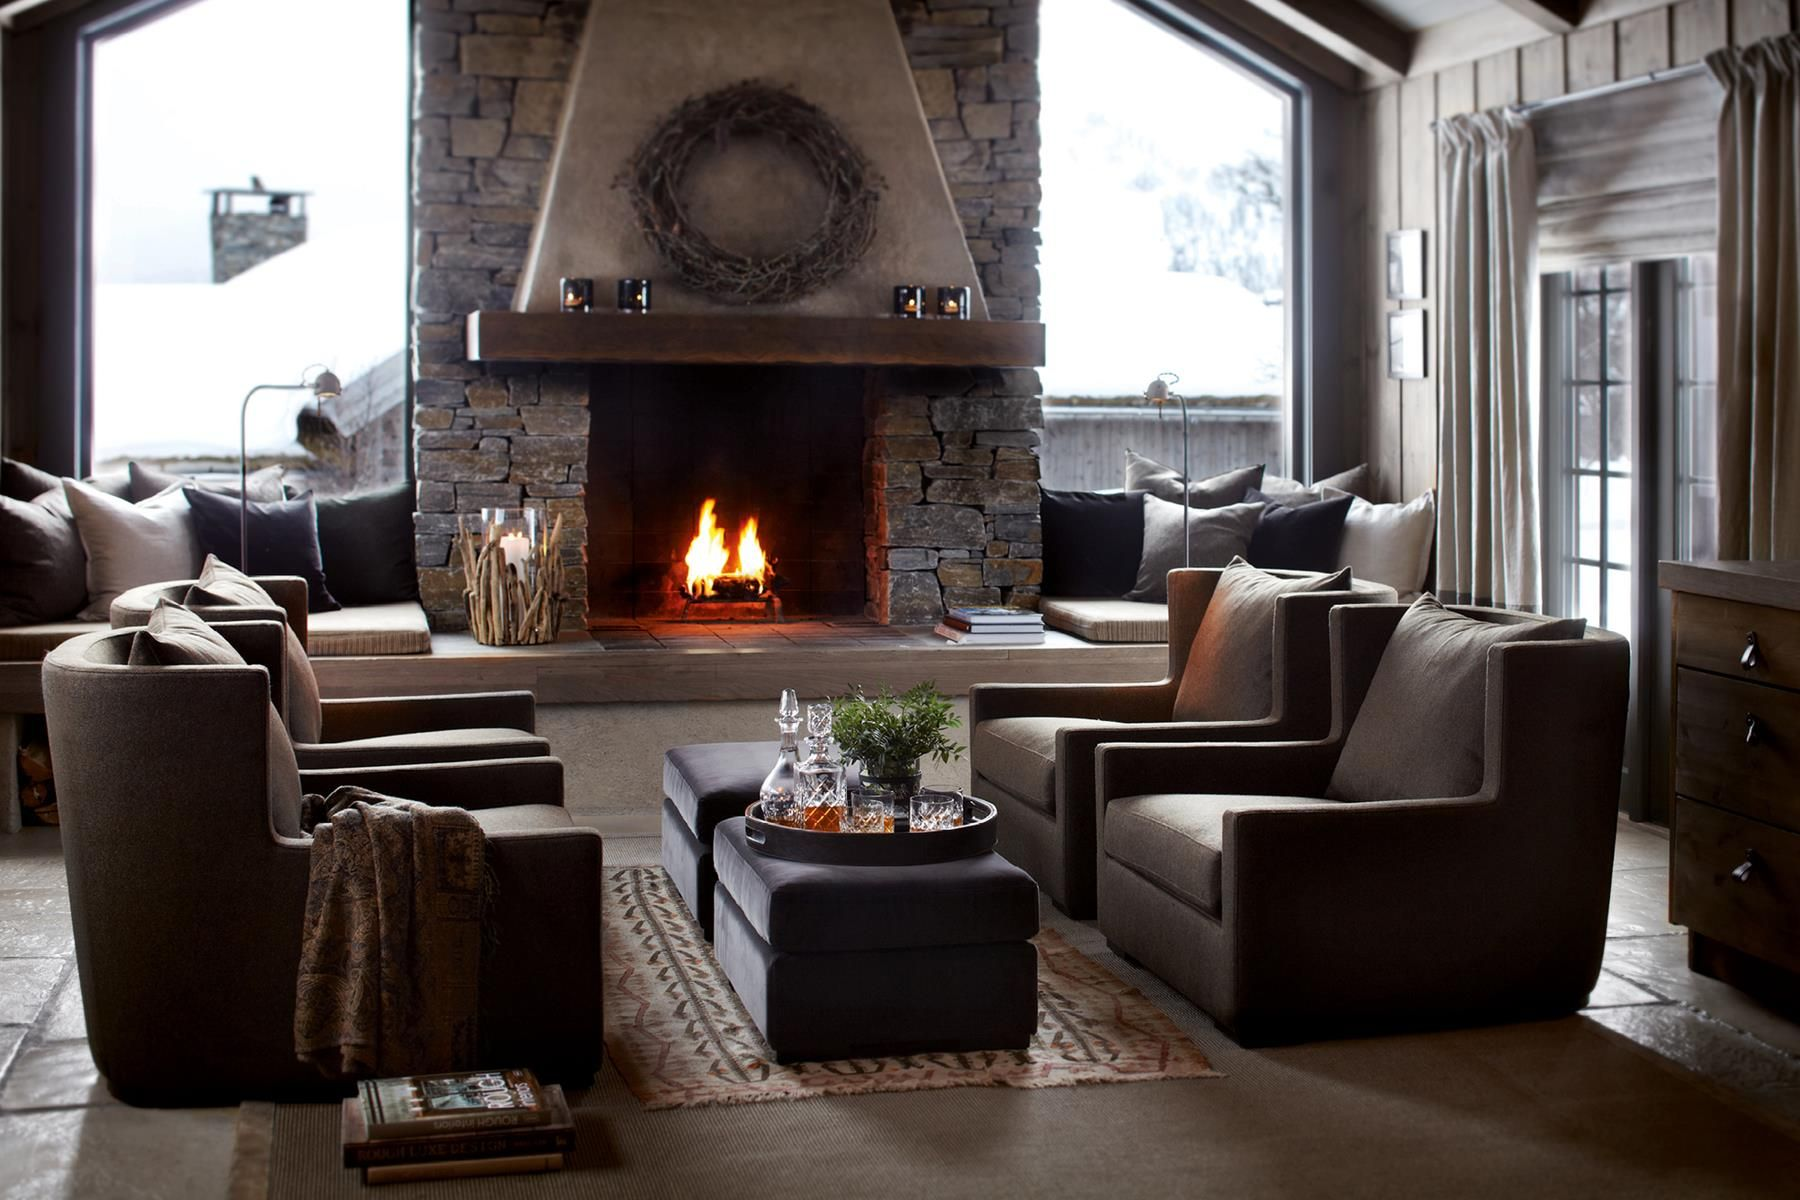 Décor Inspiration A Cosy Ski Lodge With Warm Fire